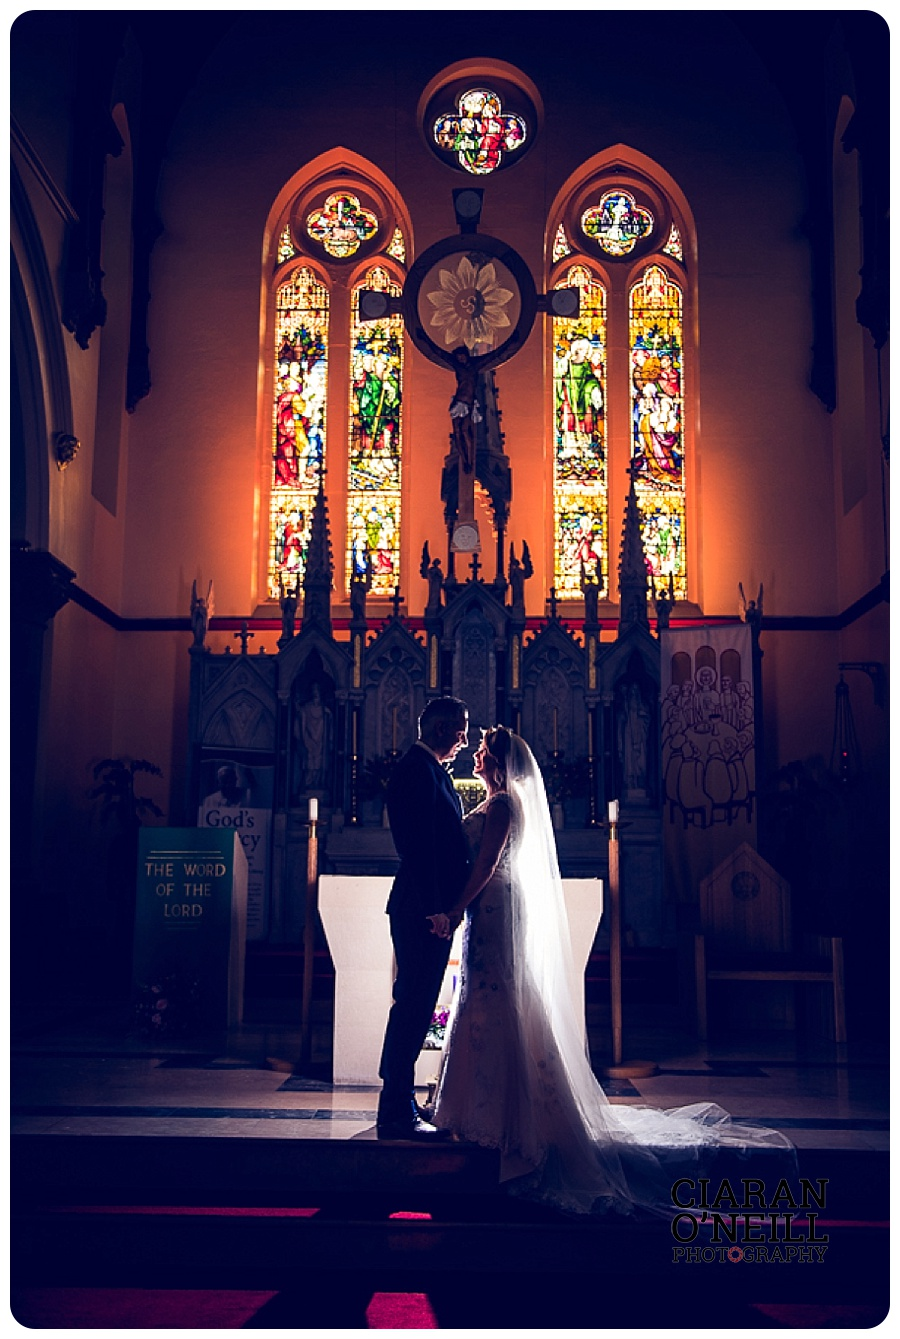 shauna-steves-wedding-at-the-millbrook-lodge-hotel-by-ciaran-oneill-photography-14